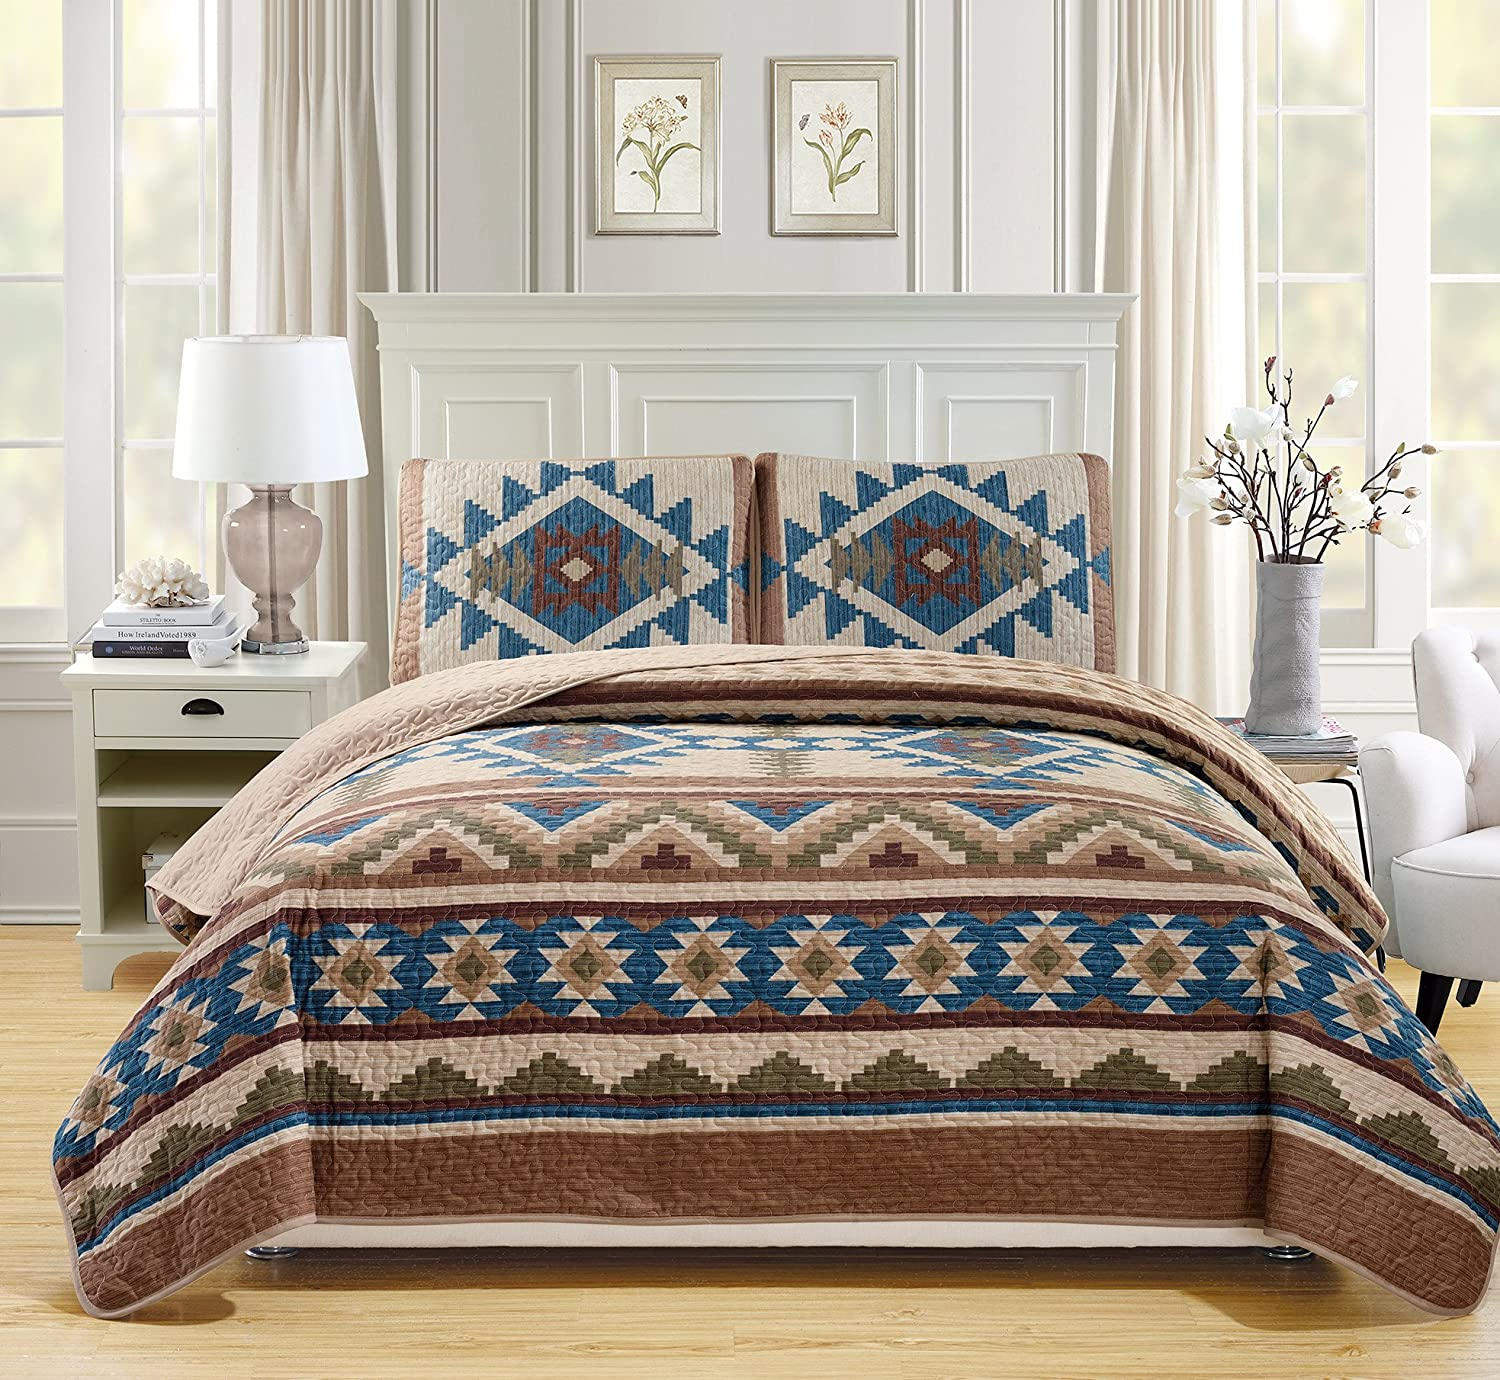 Western Southwestern Native American Tribal Navajo Design 3 Piece Multicolor Beige Taupe Brown Blue Green Oversize King/California King Bedspread Quilt Set